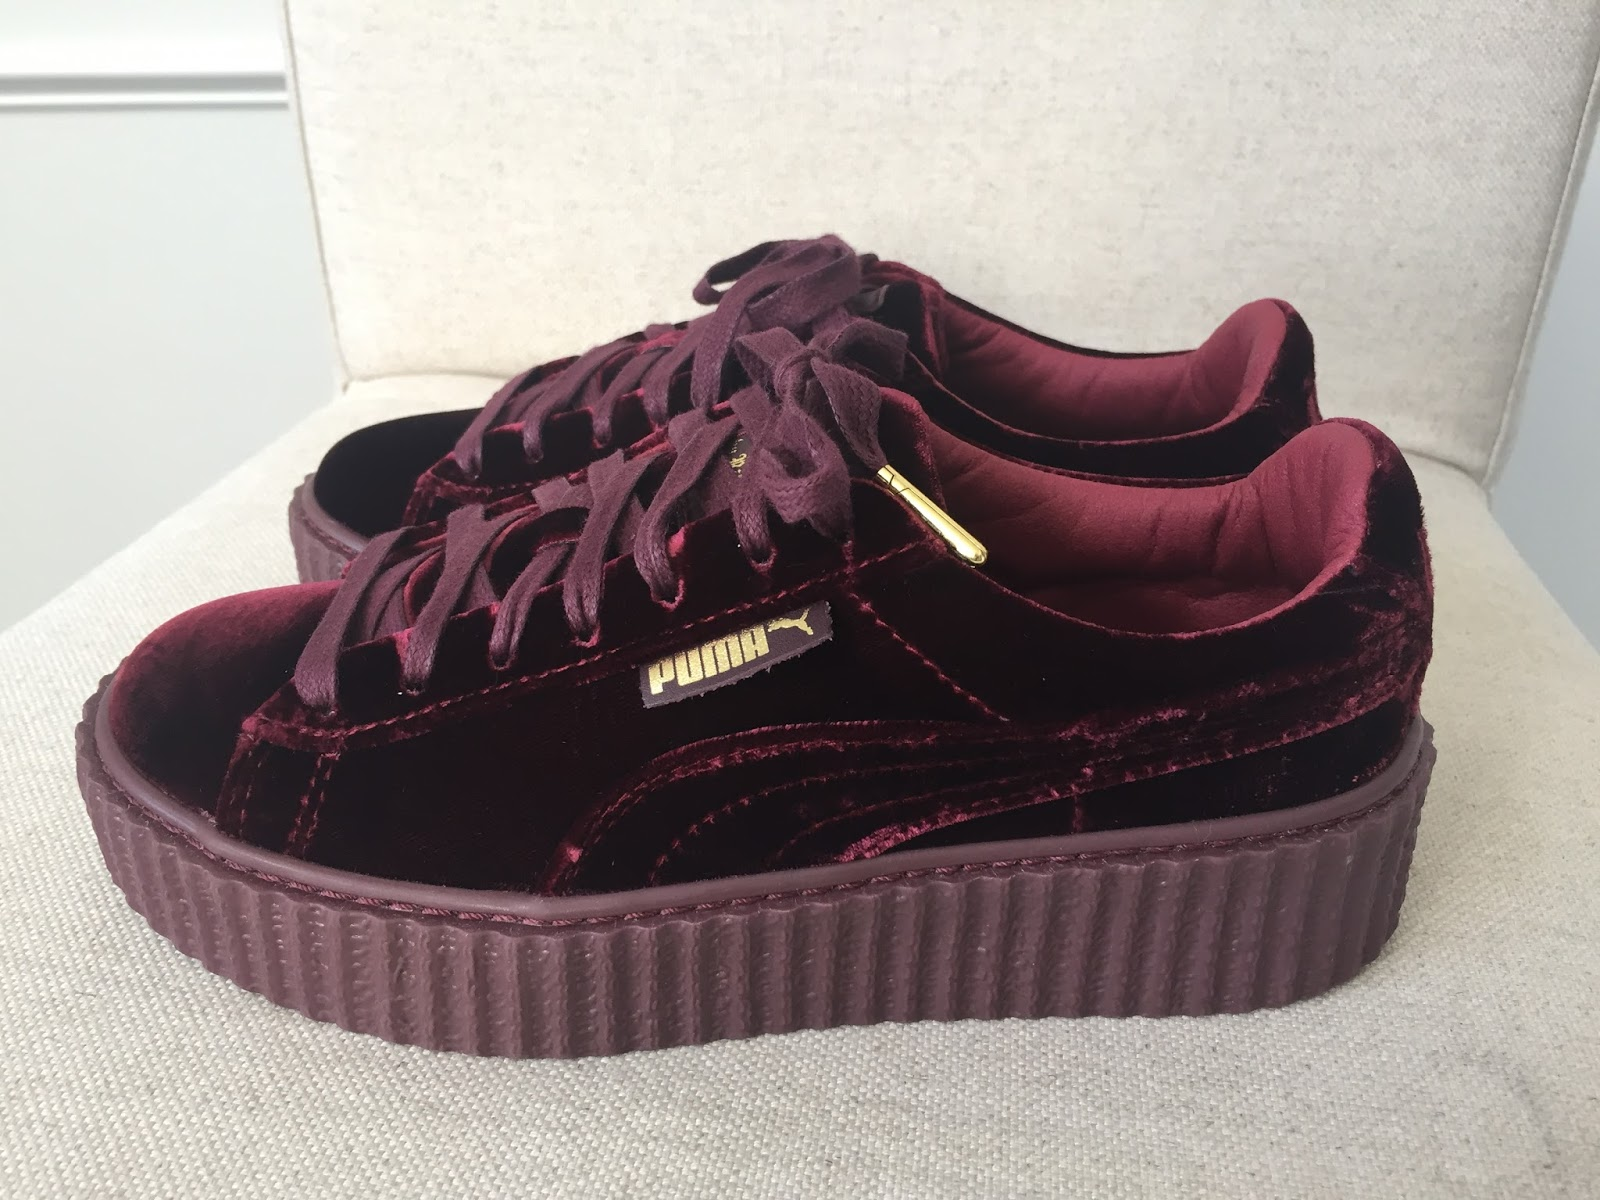 best website 833d3 b8caa Petite Impact: Fit Review Fenty Puma Rihanna Velvet Creepers